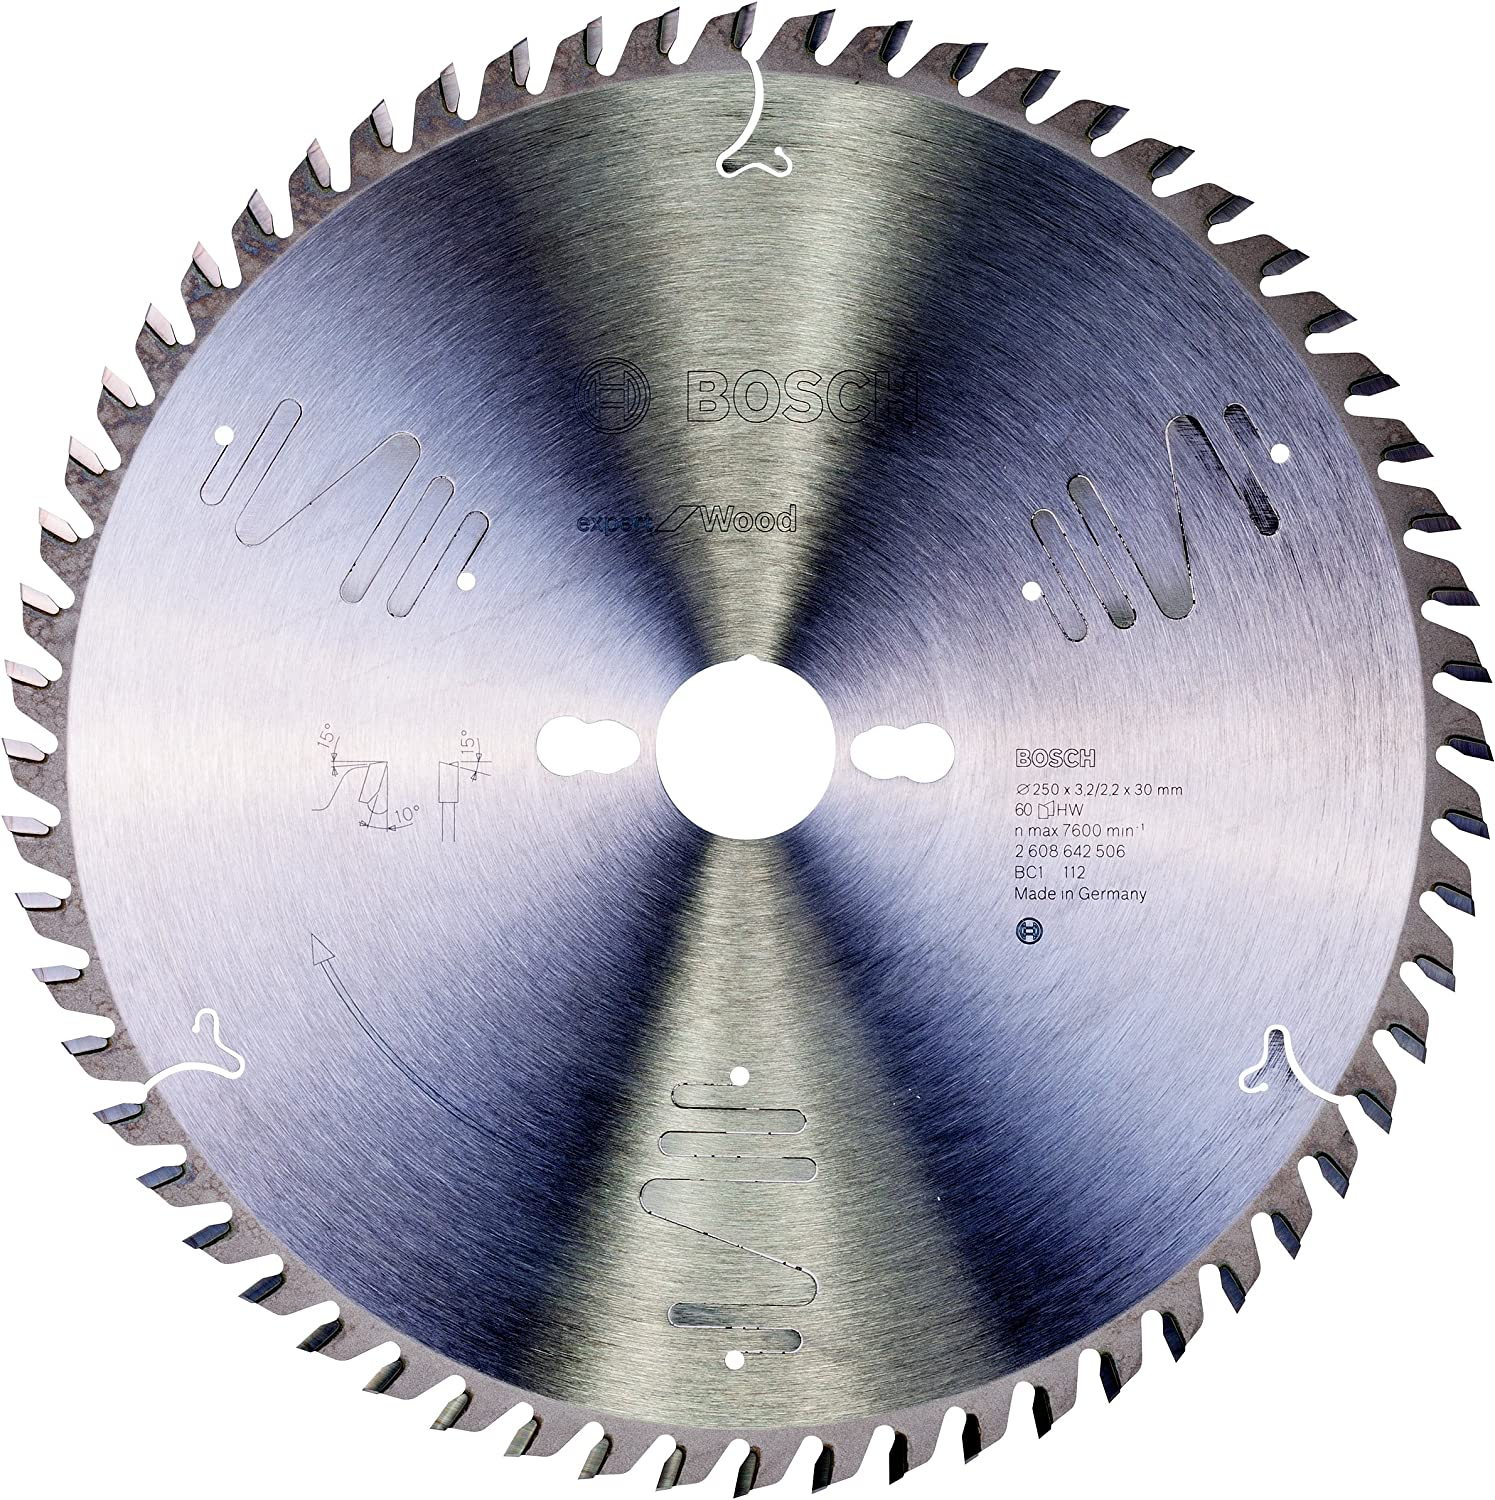 New product! New type Bosch 2329839 Table Selling and selling Blade Saw Blue